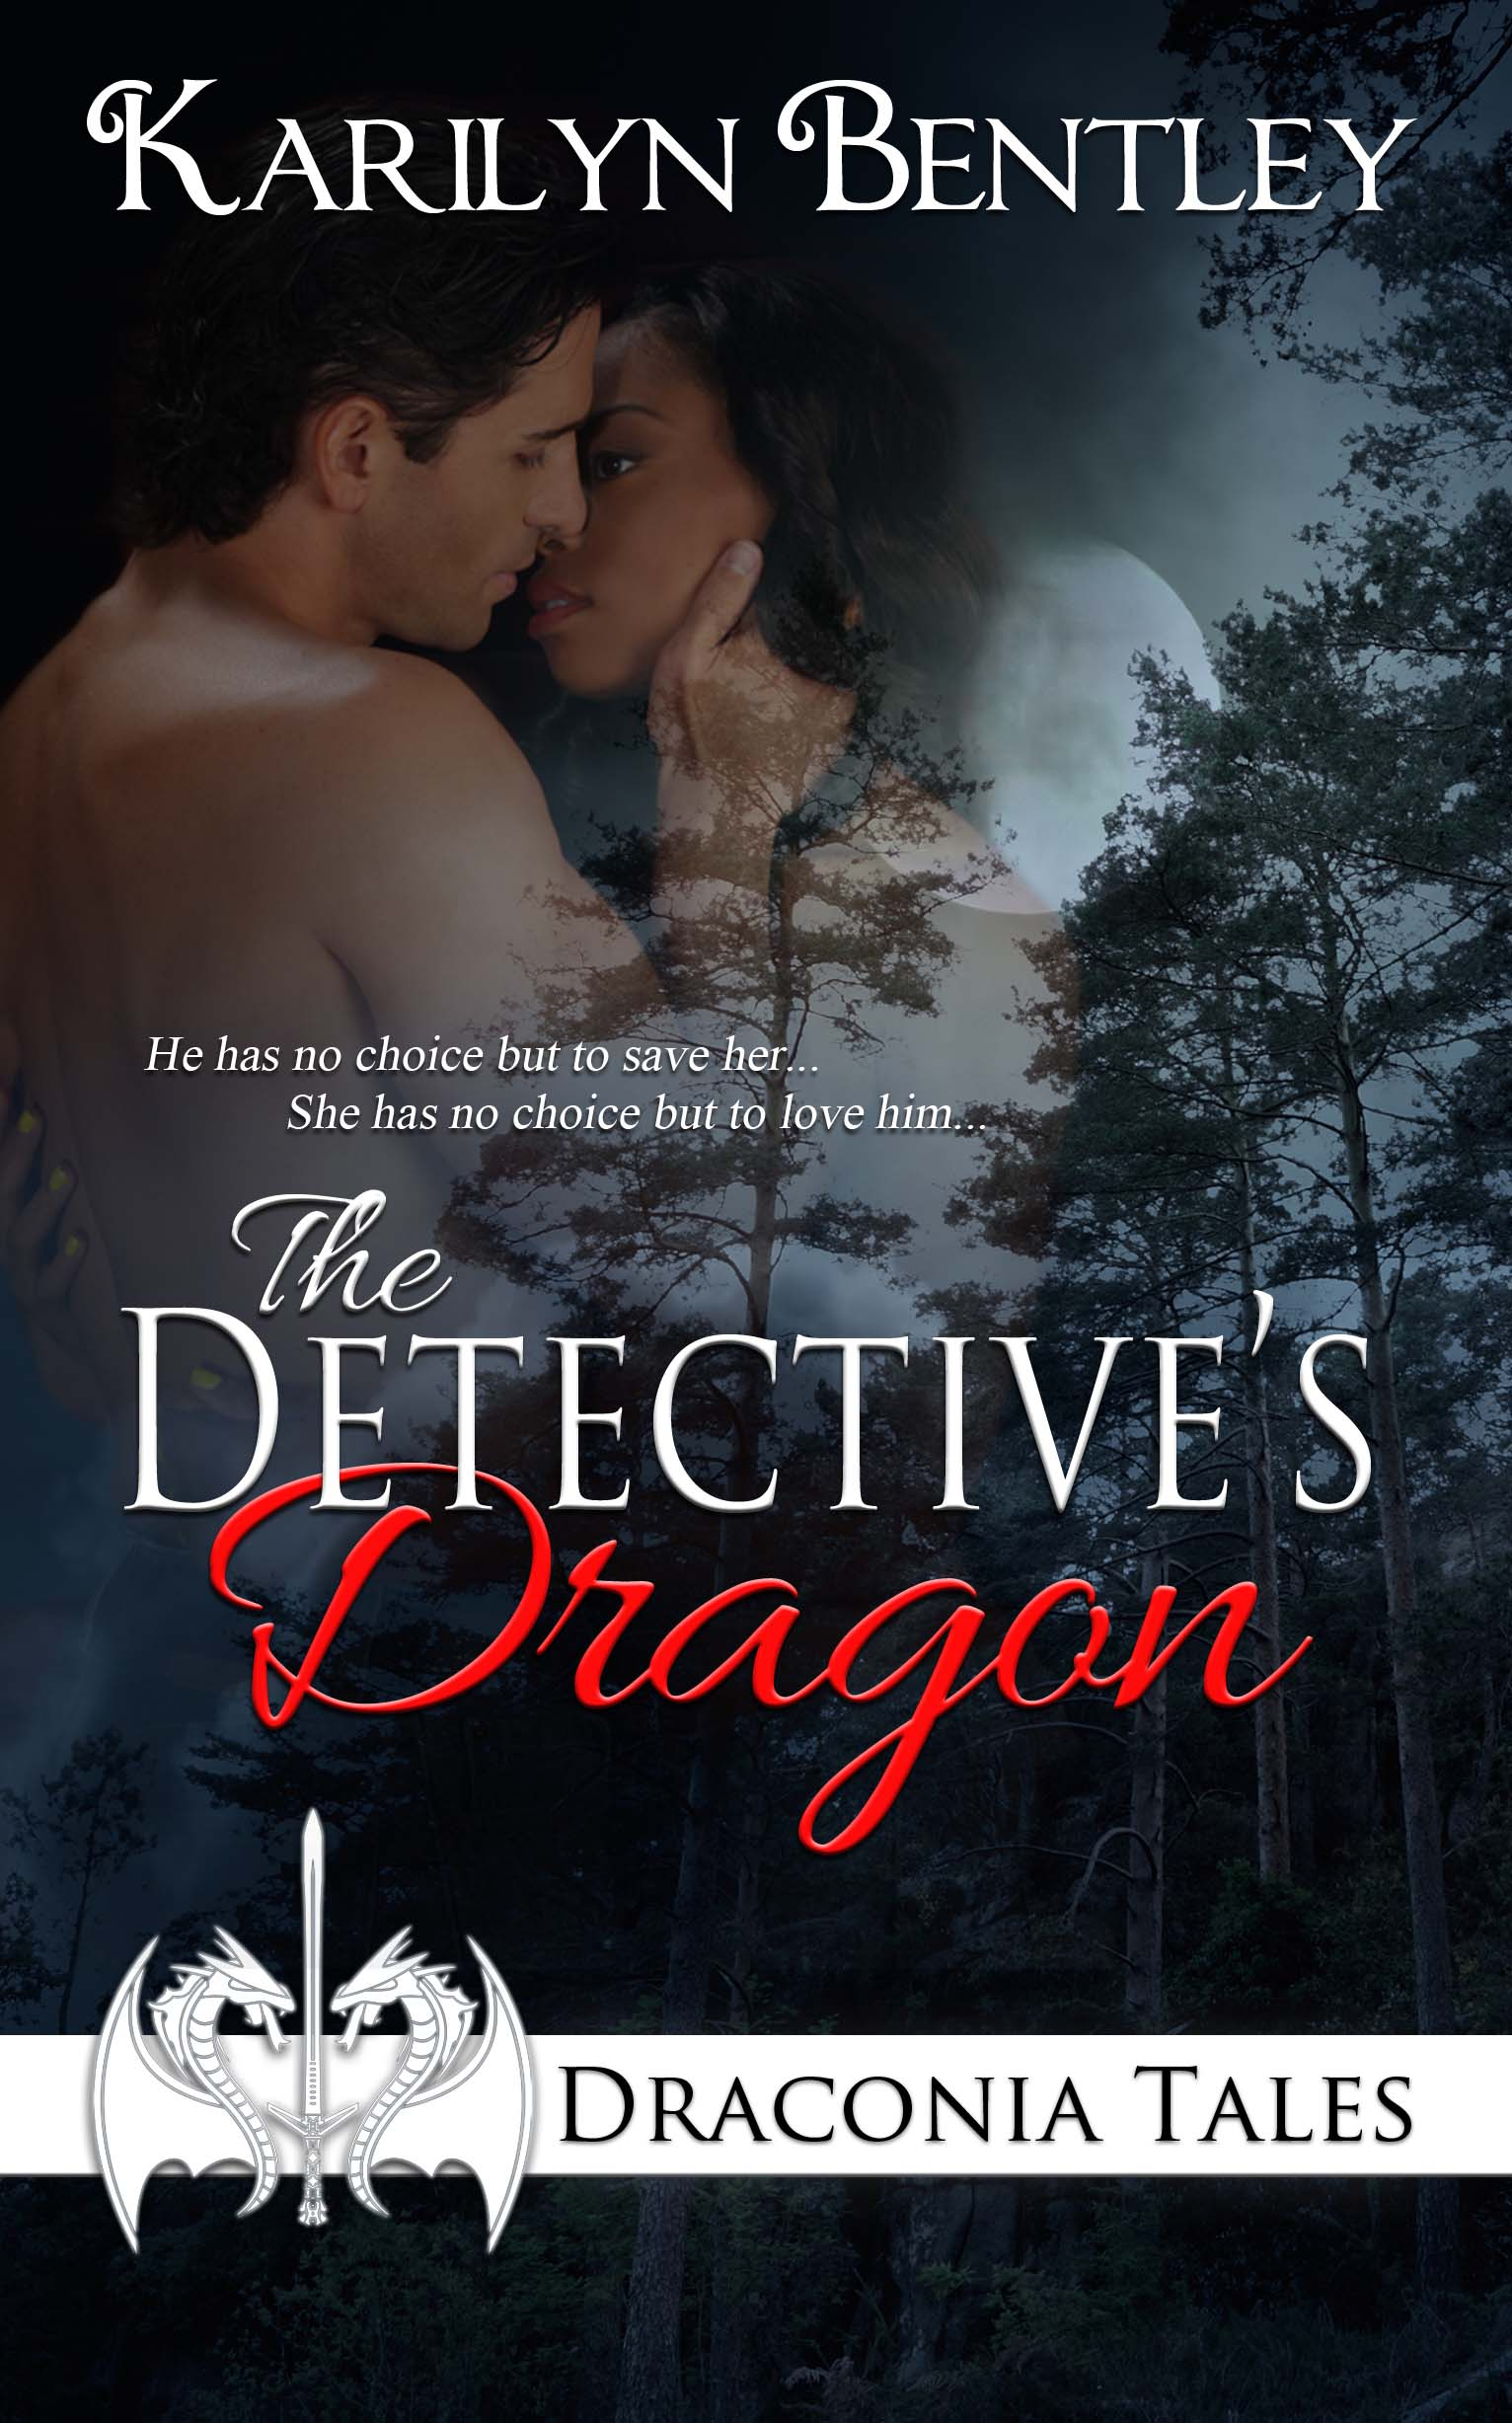 The Detectives Dragon Cover Art